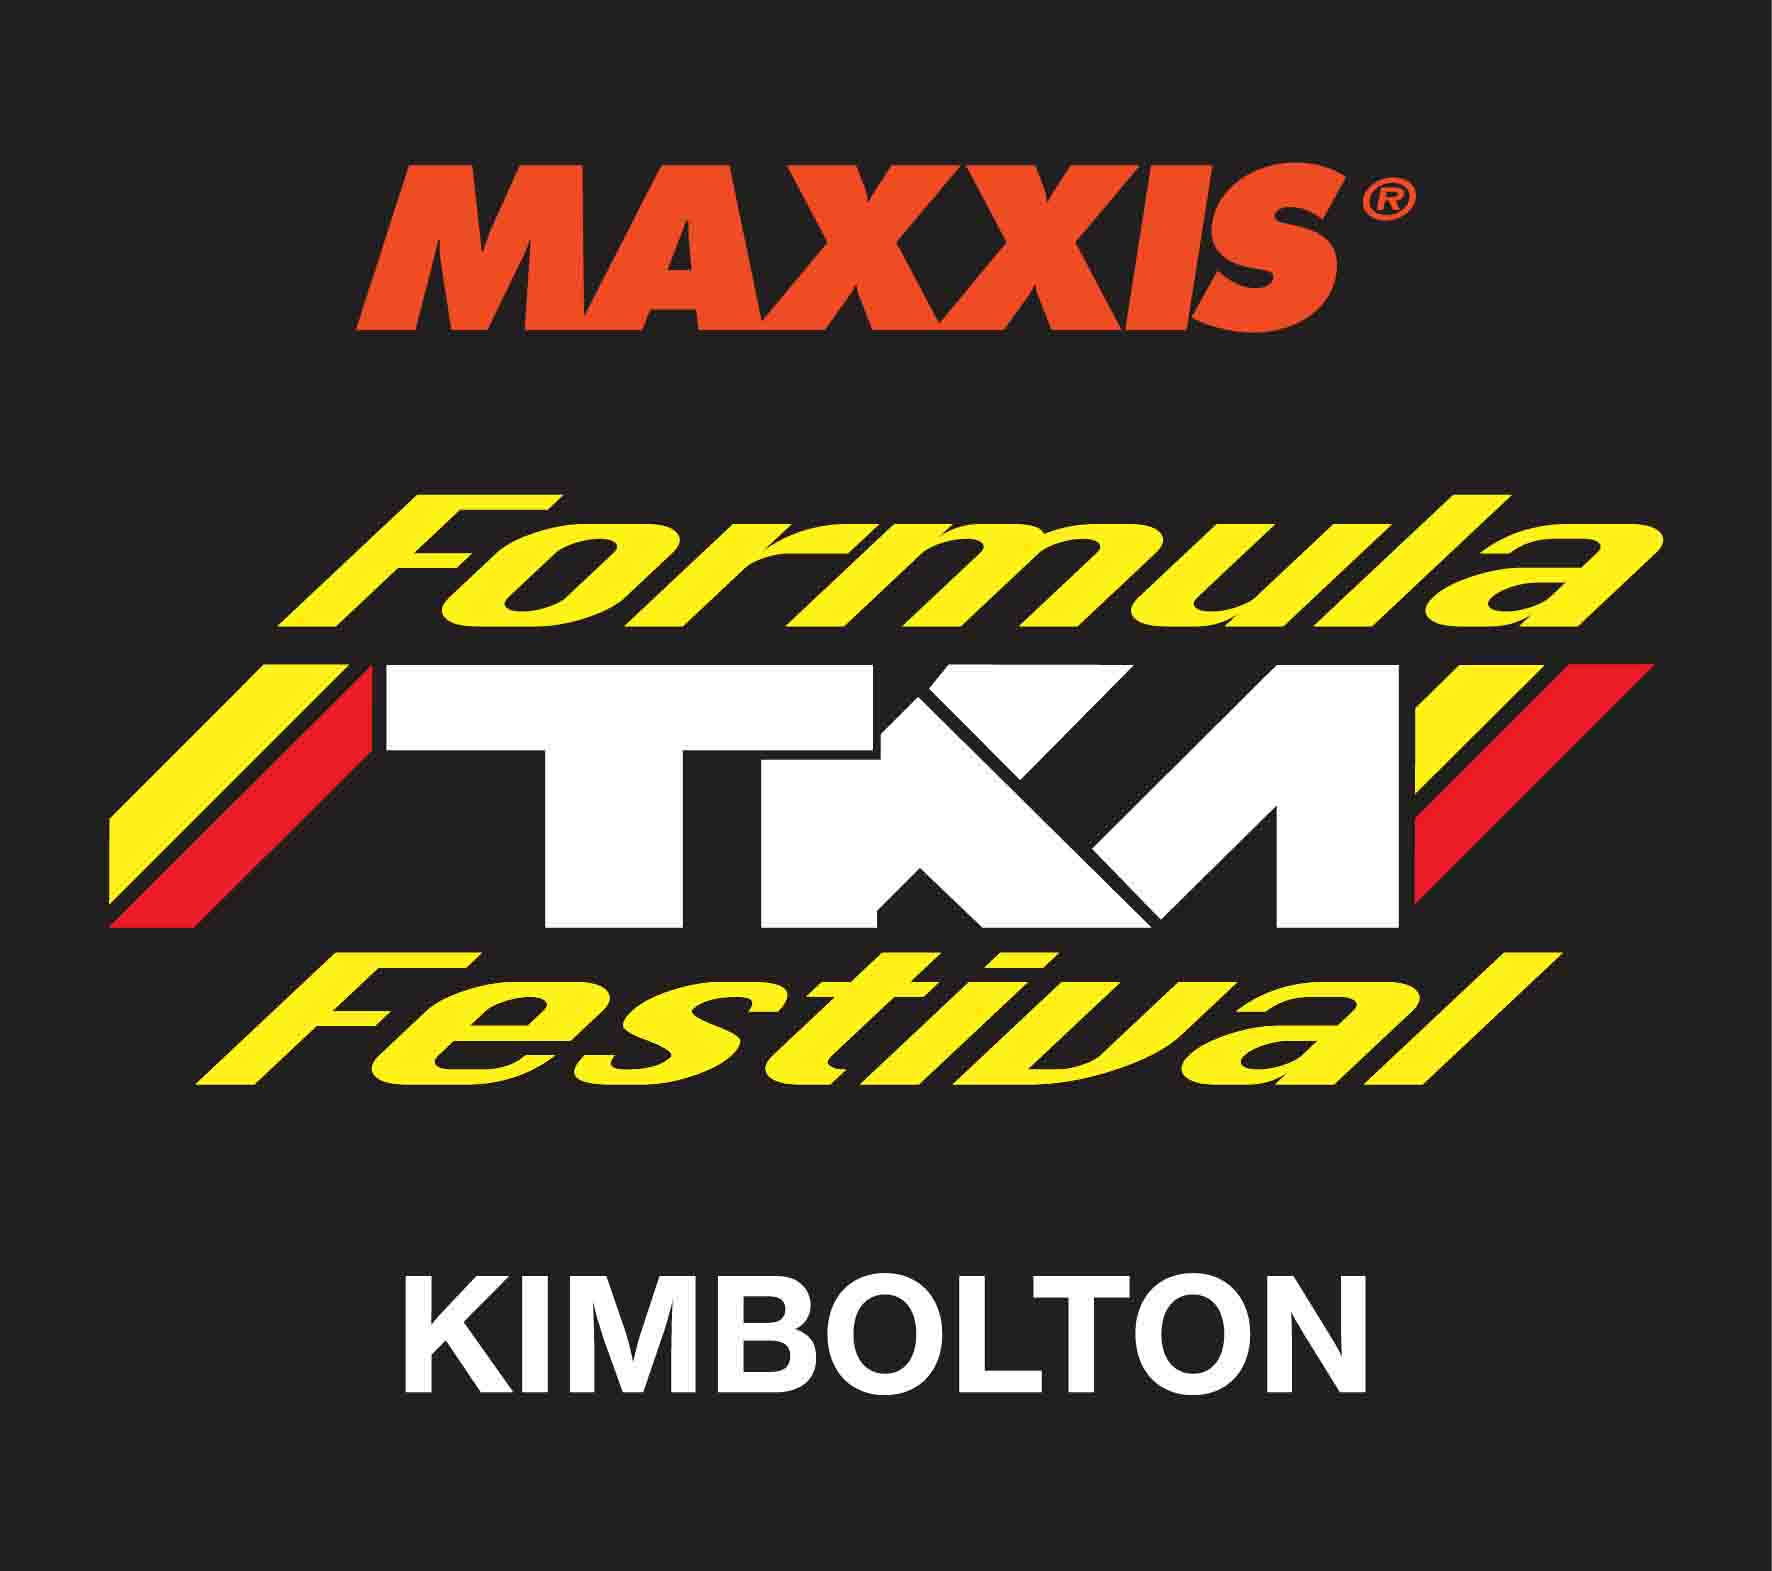 MAXXIS Classic Festival Tyres